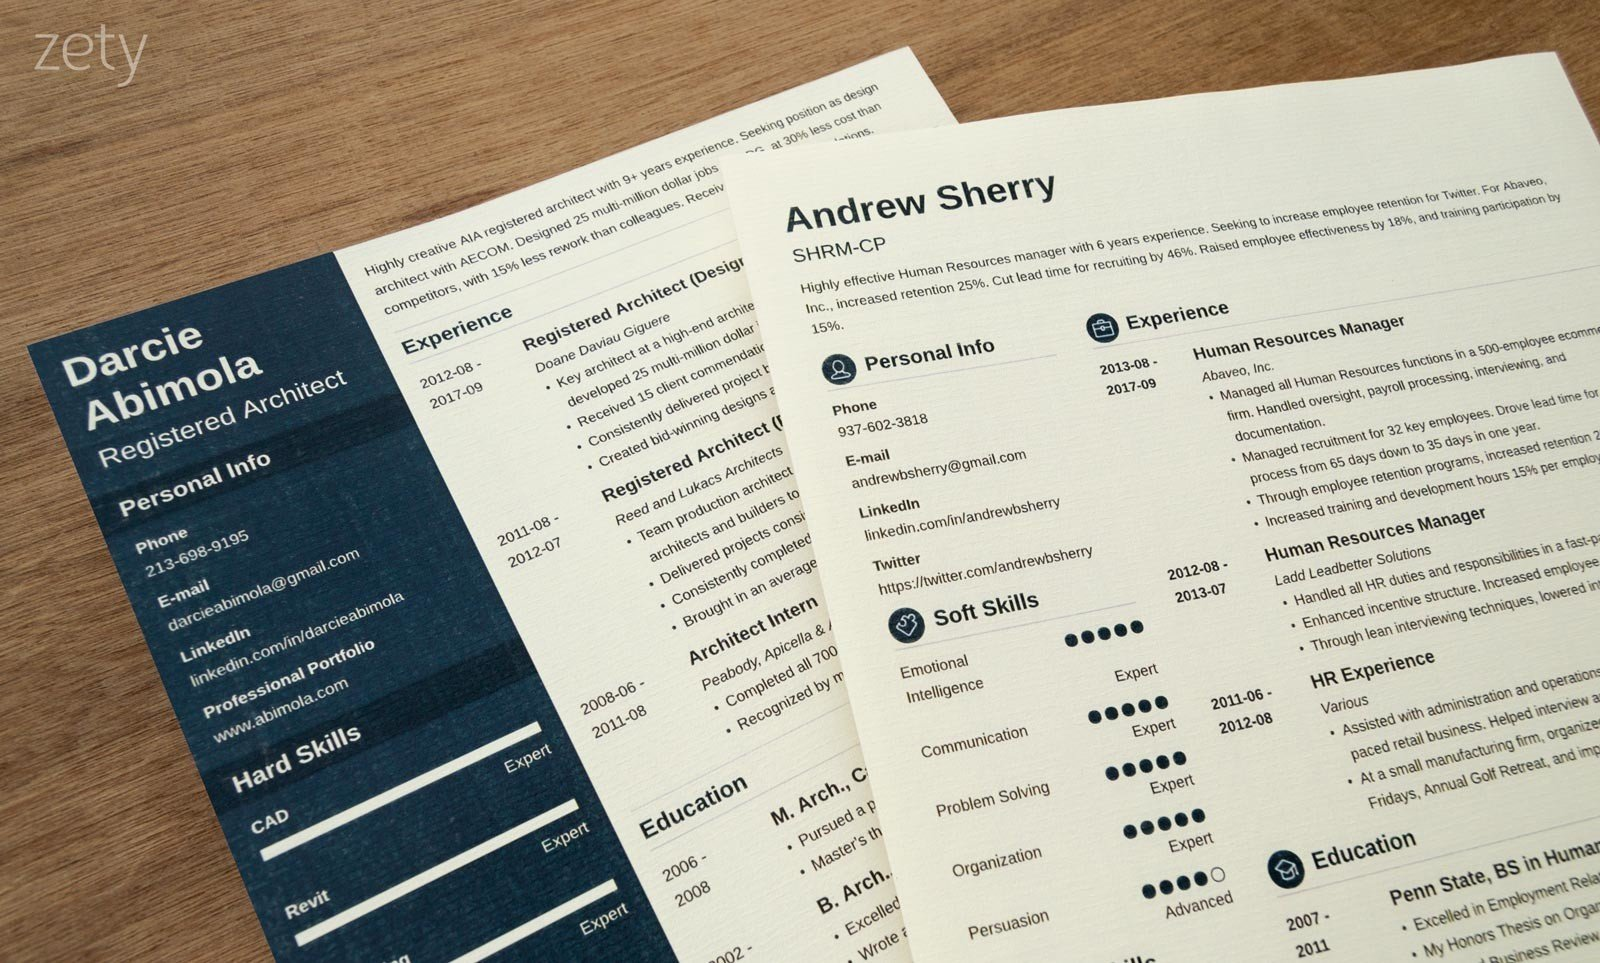 Resume Paper: What Type of Paper Is Best for a Resume? (12 Photos)